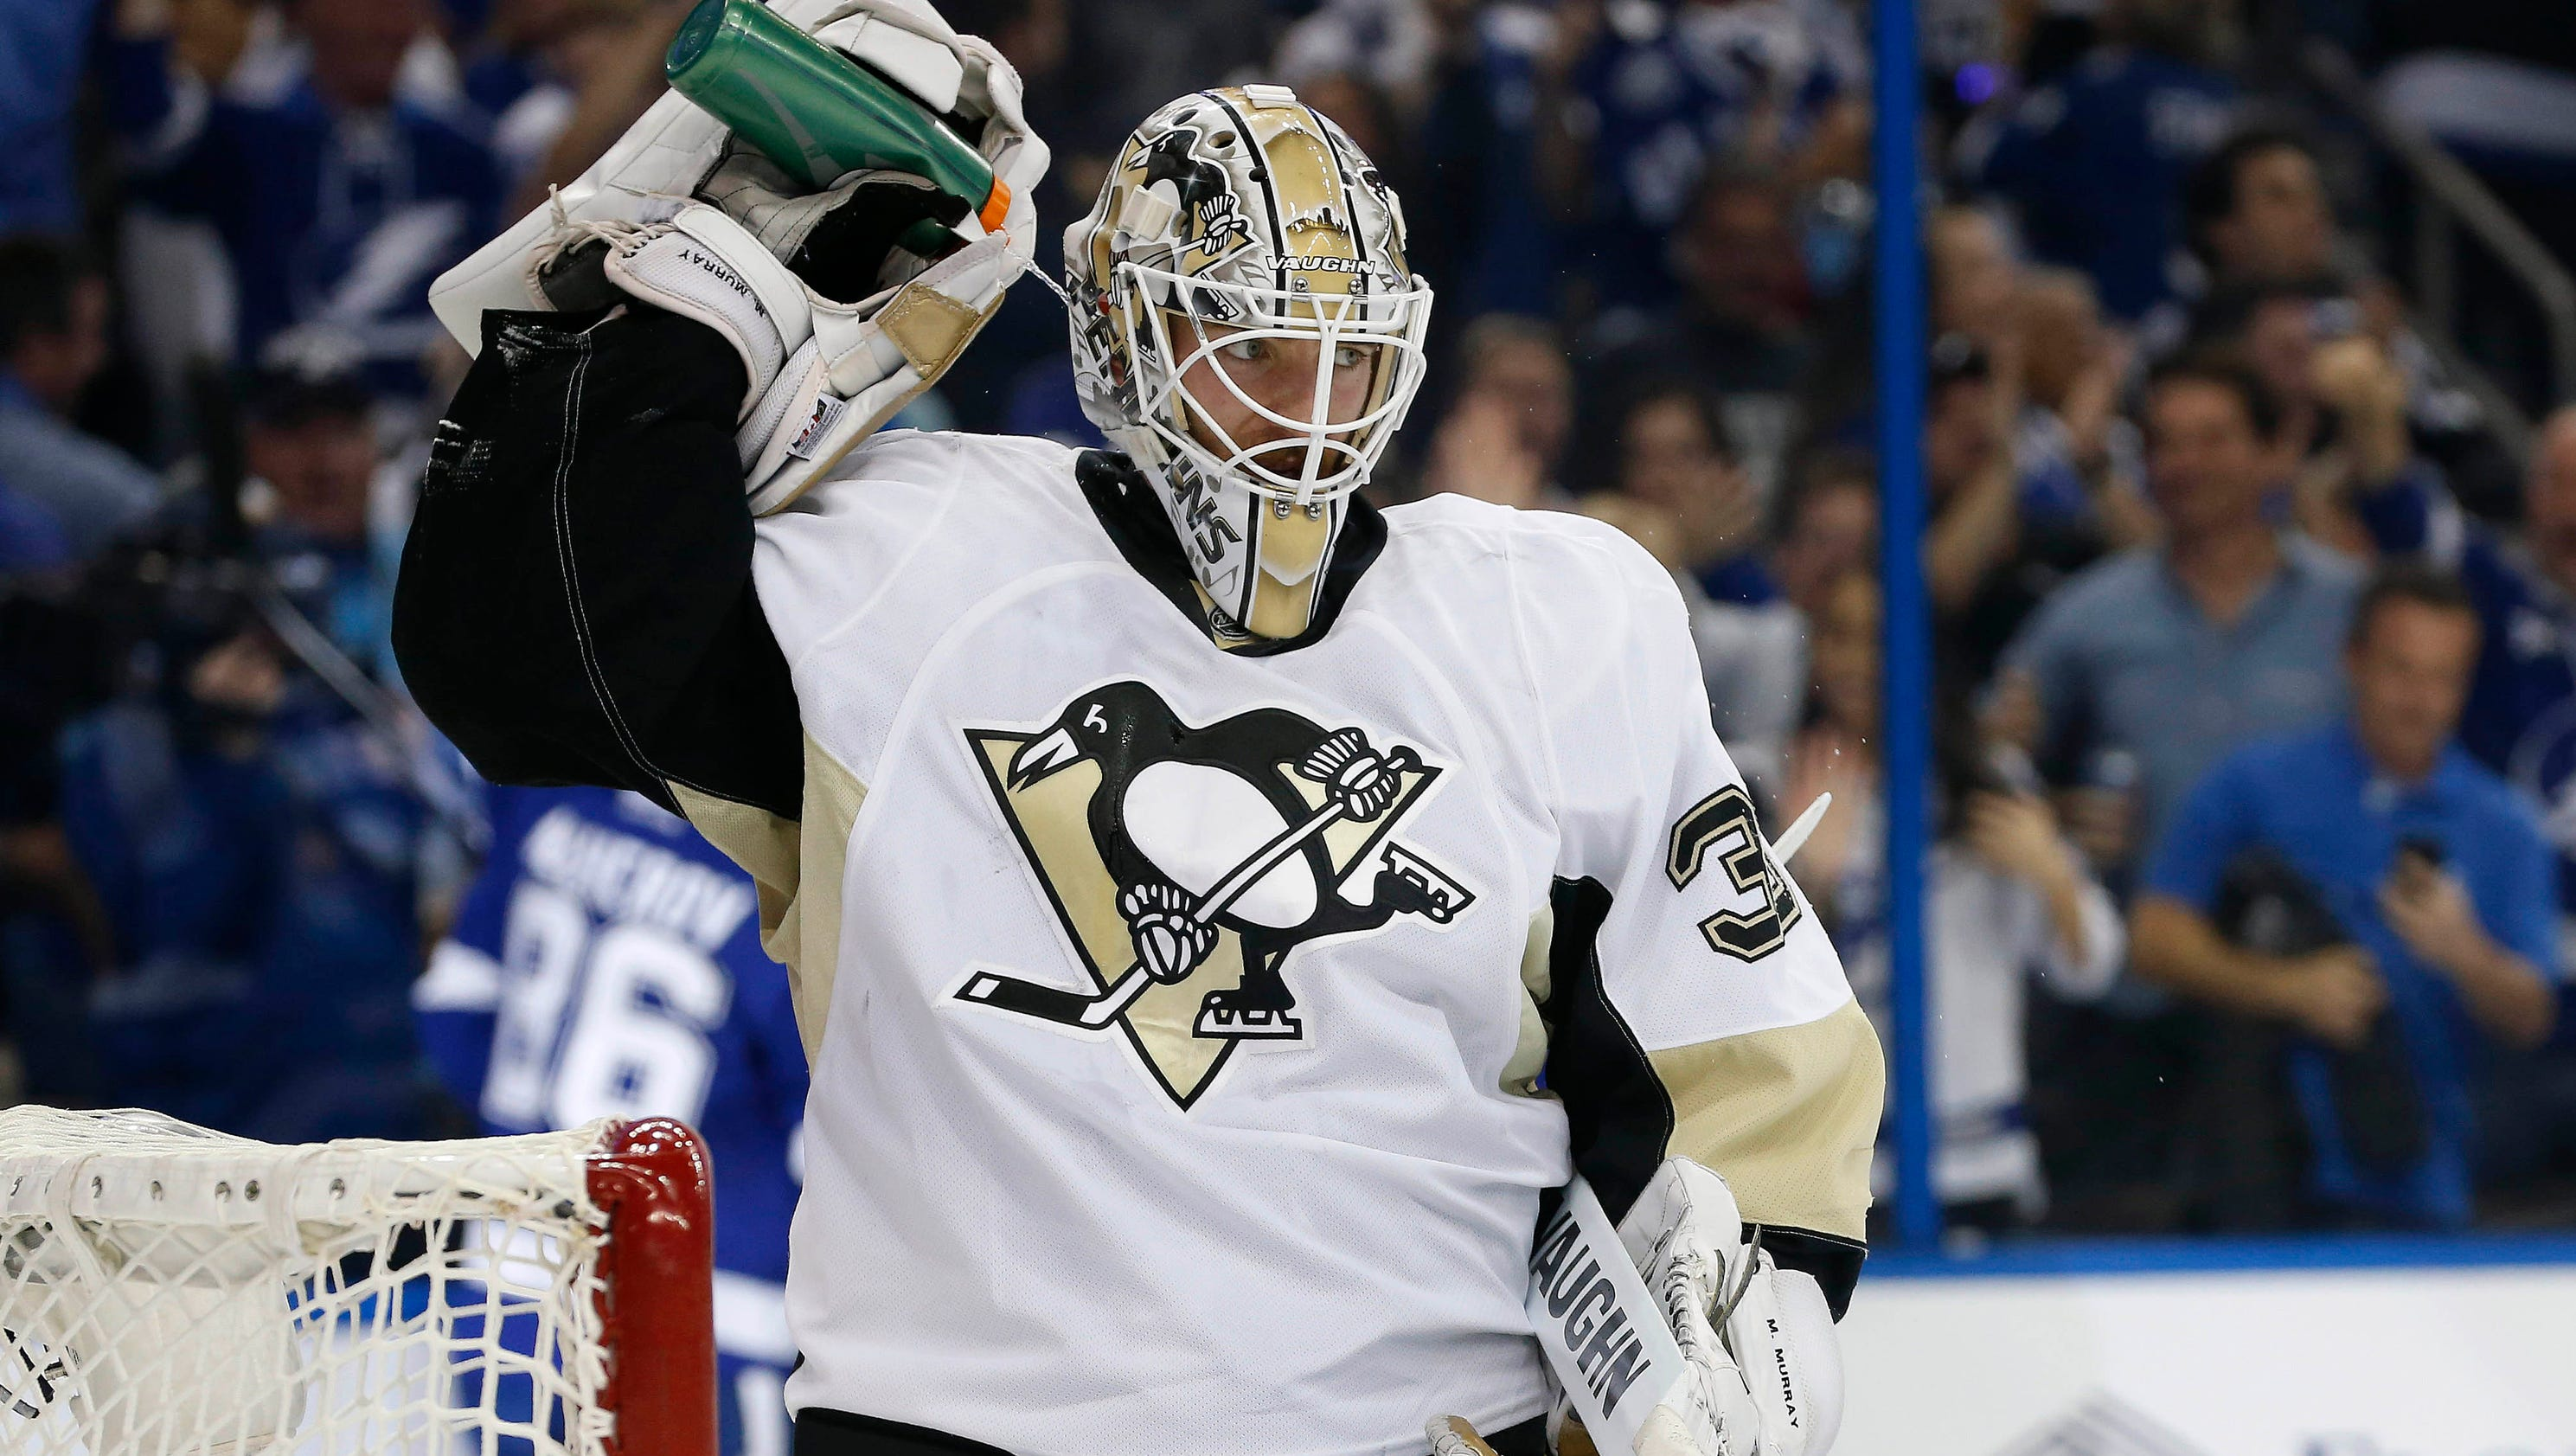 635996912014152828-usp-nhl--stanley-cup-playoffs-pittsburgh-penguins